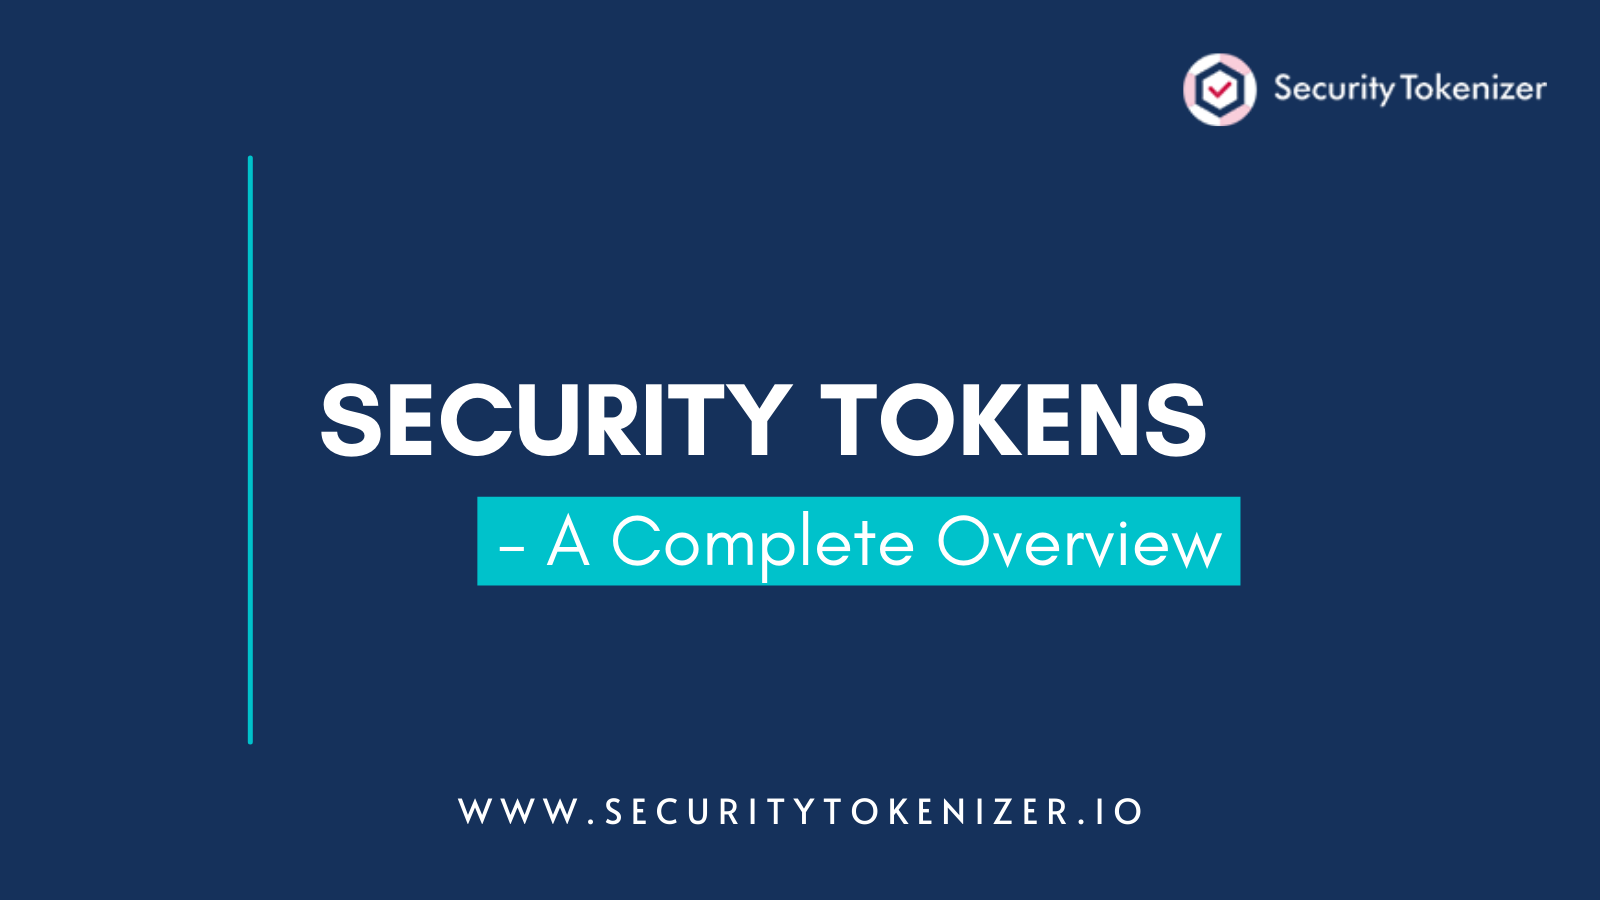 What Are Security Tokens - A Complete Overview